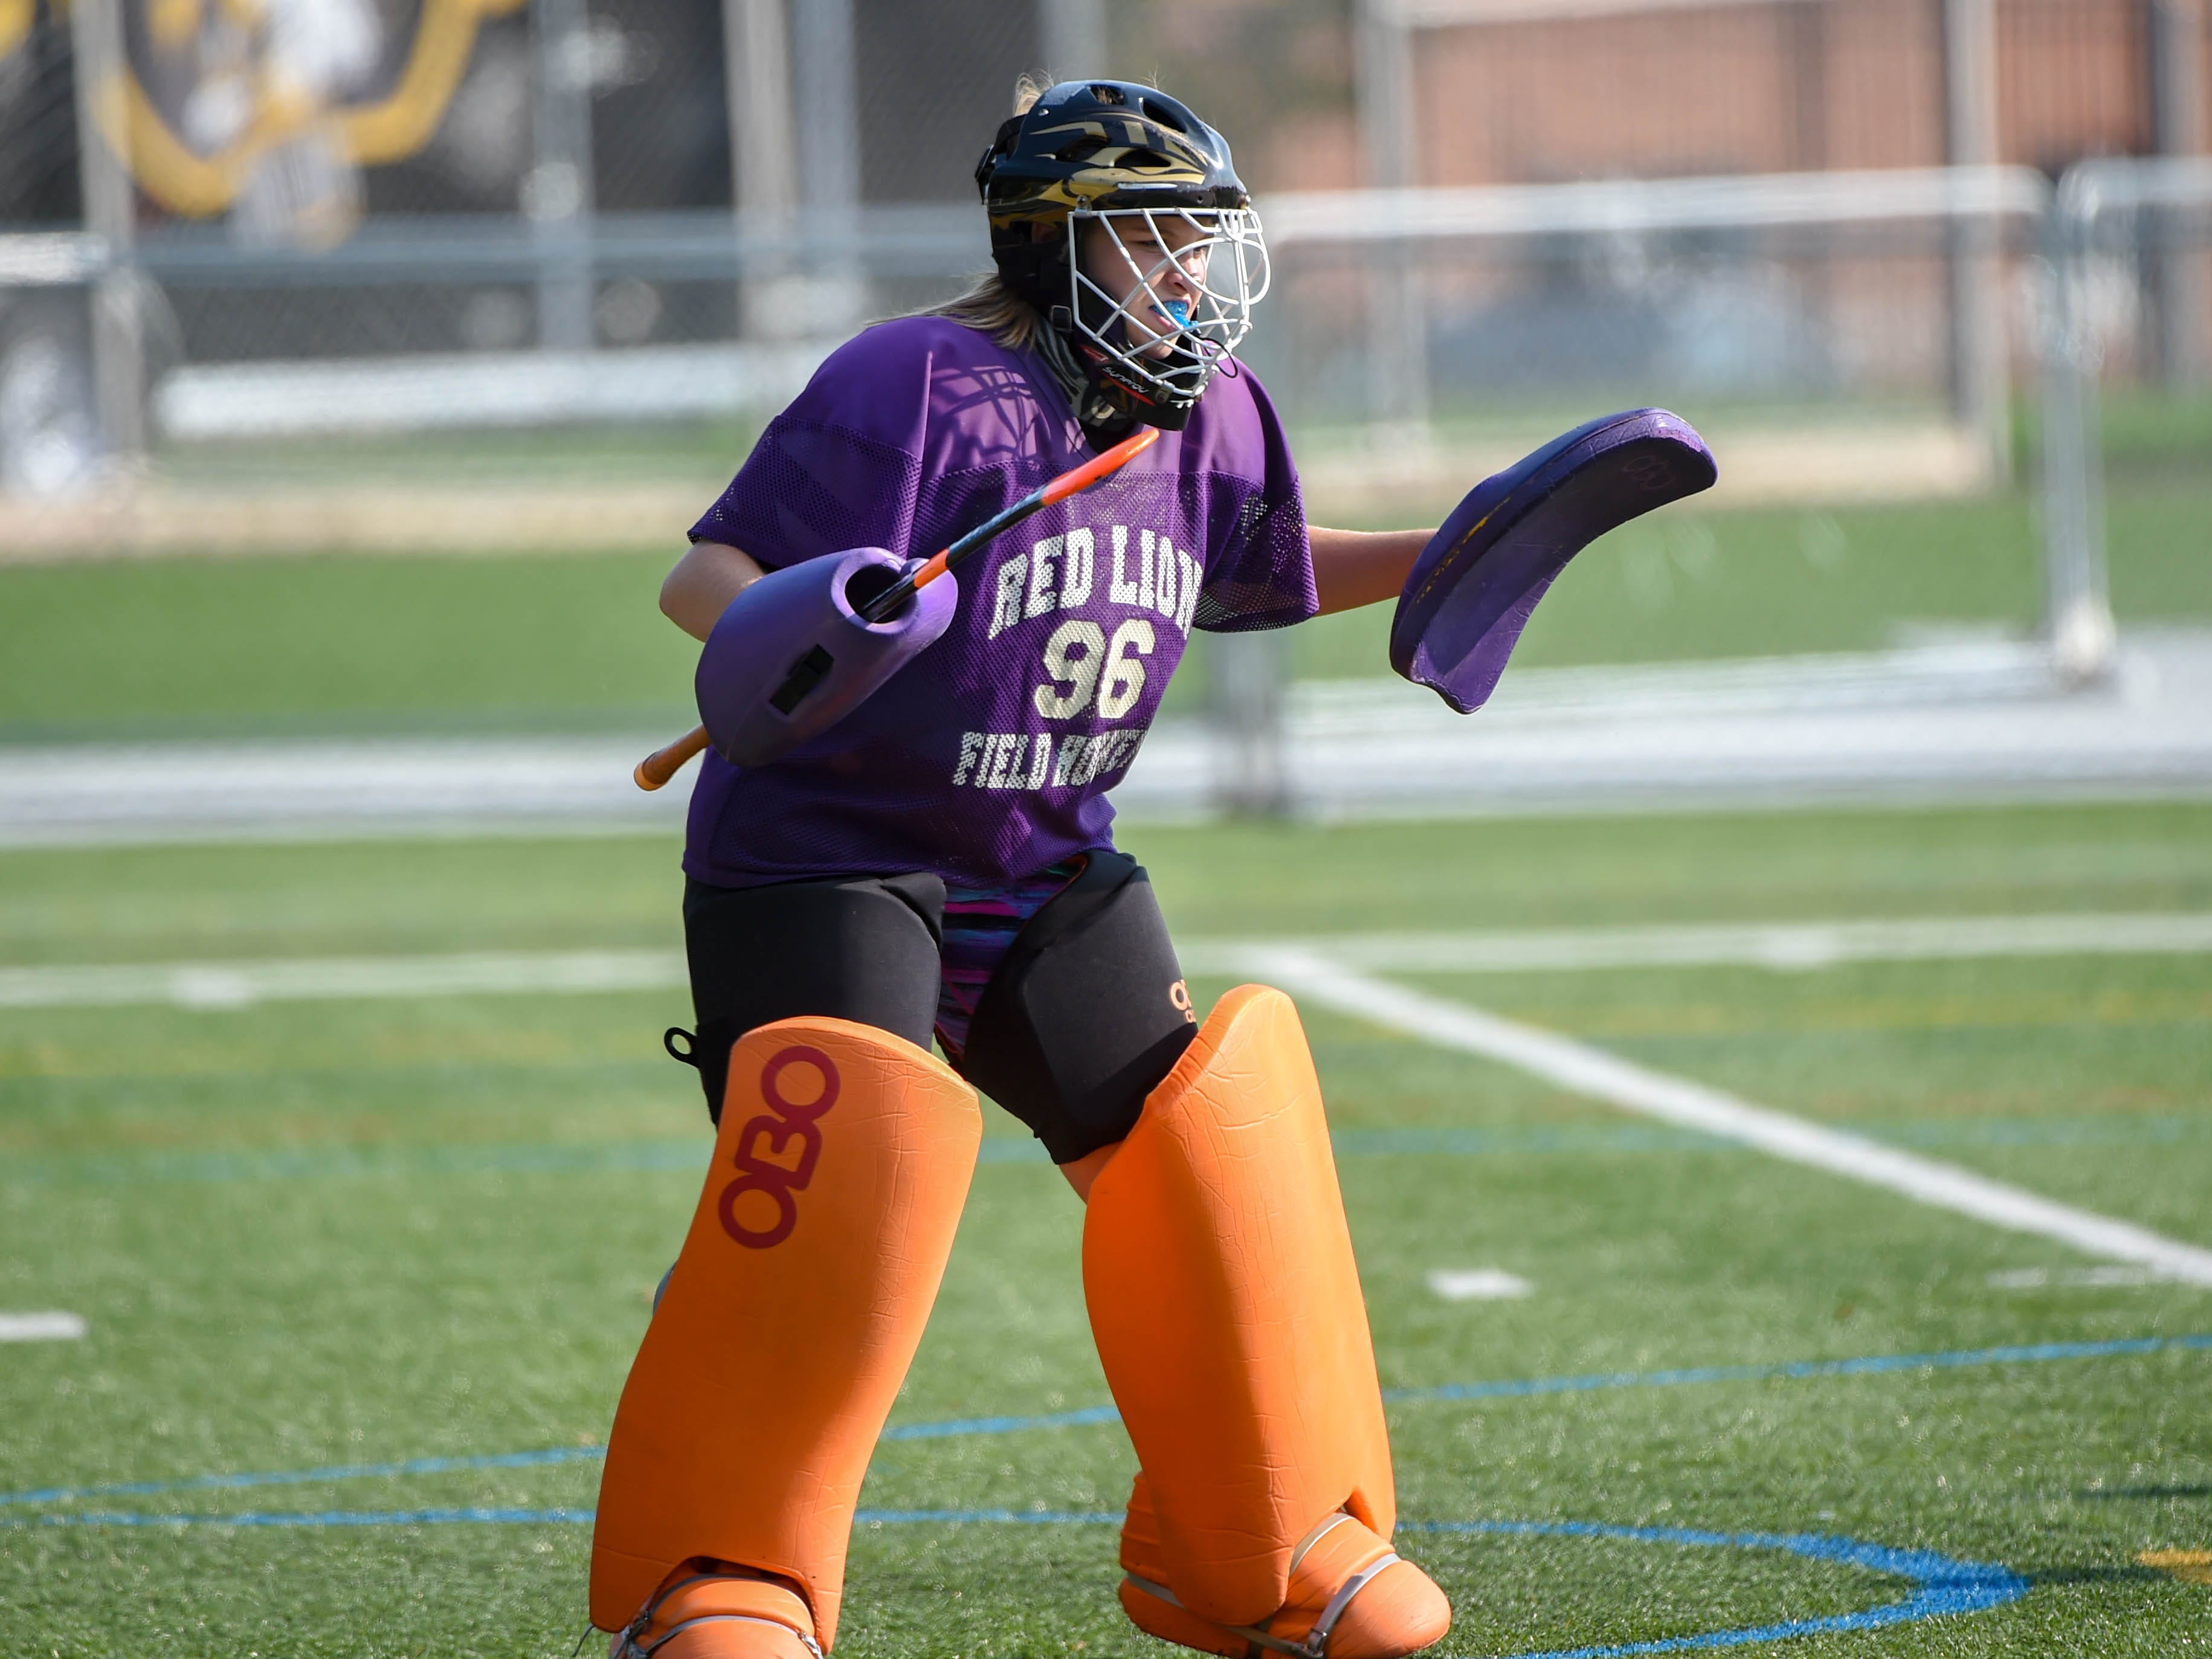 Allie Anderson (96) prepares to stop the attack during the Division I girls field hockey game between Red Lion and Central York, Wednesday, September 19, 2018.